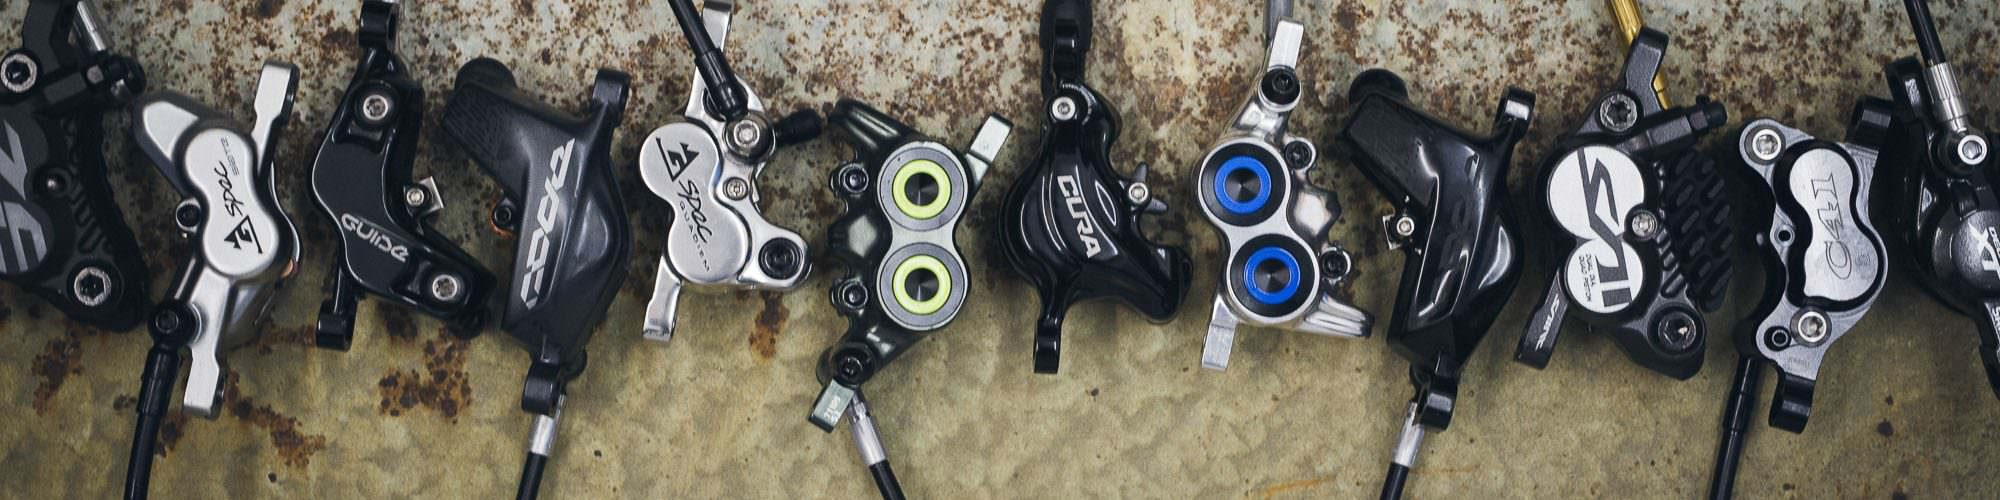 The Best Mtb Disc Brake You Can Buy Page 16 Of 20 Enduro